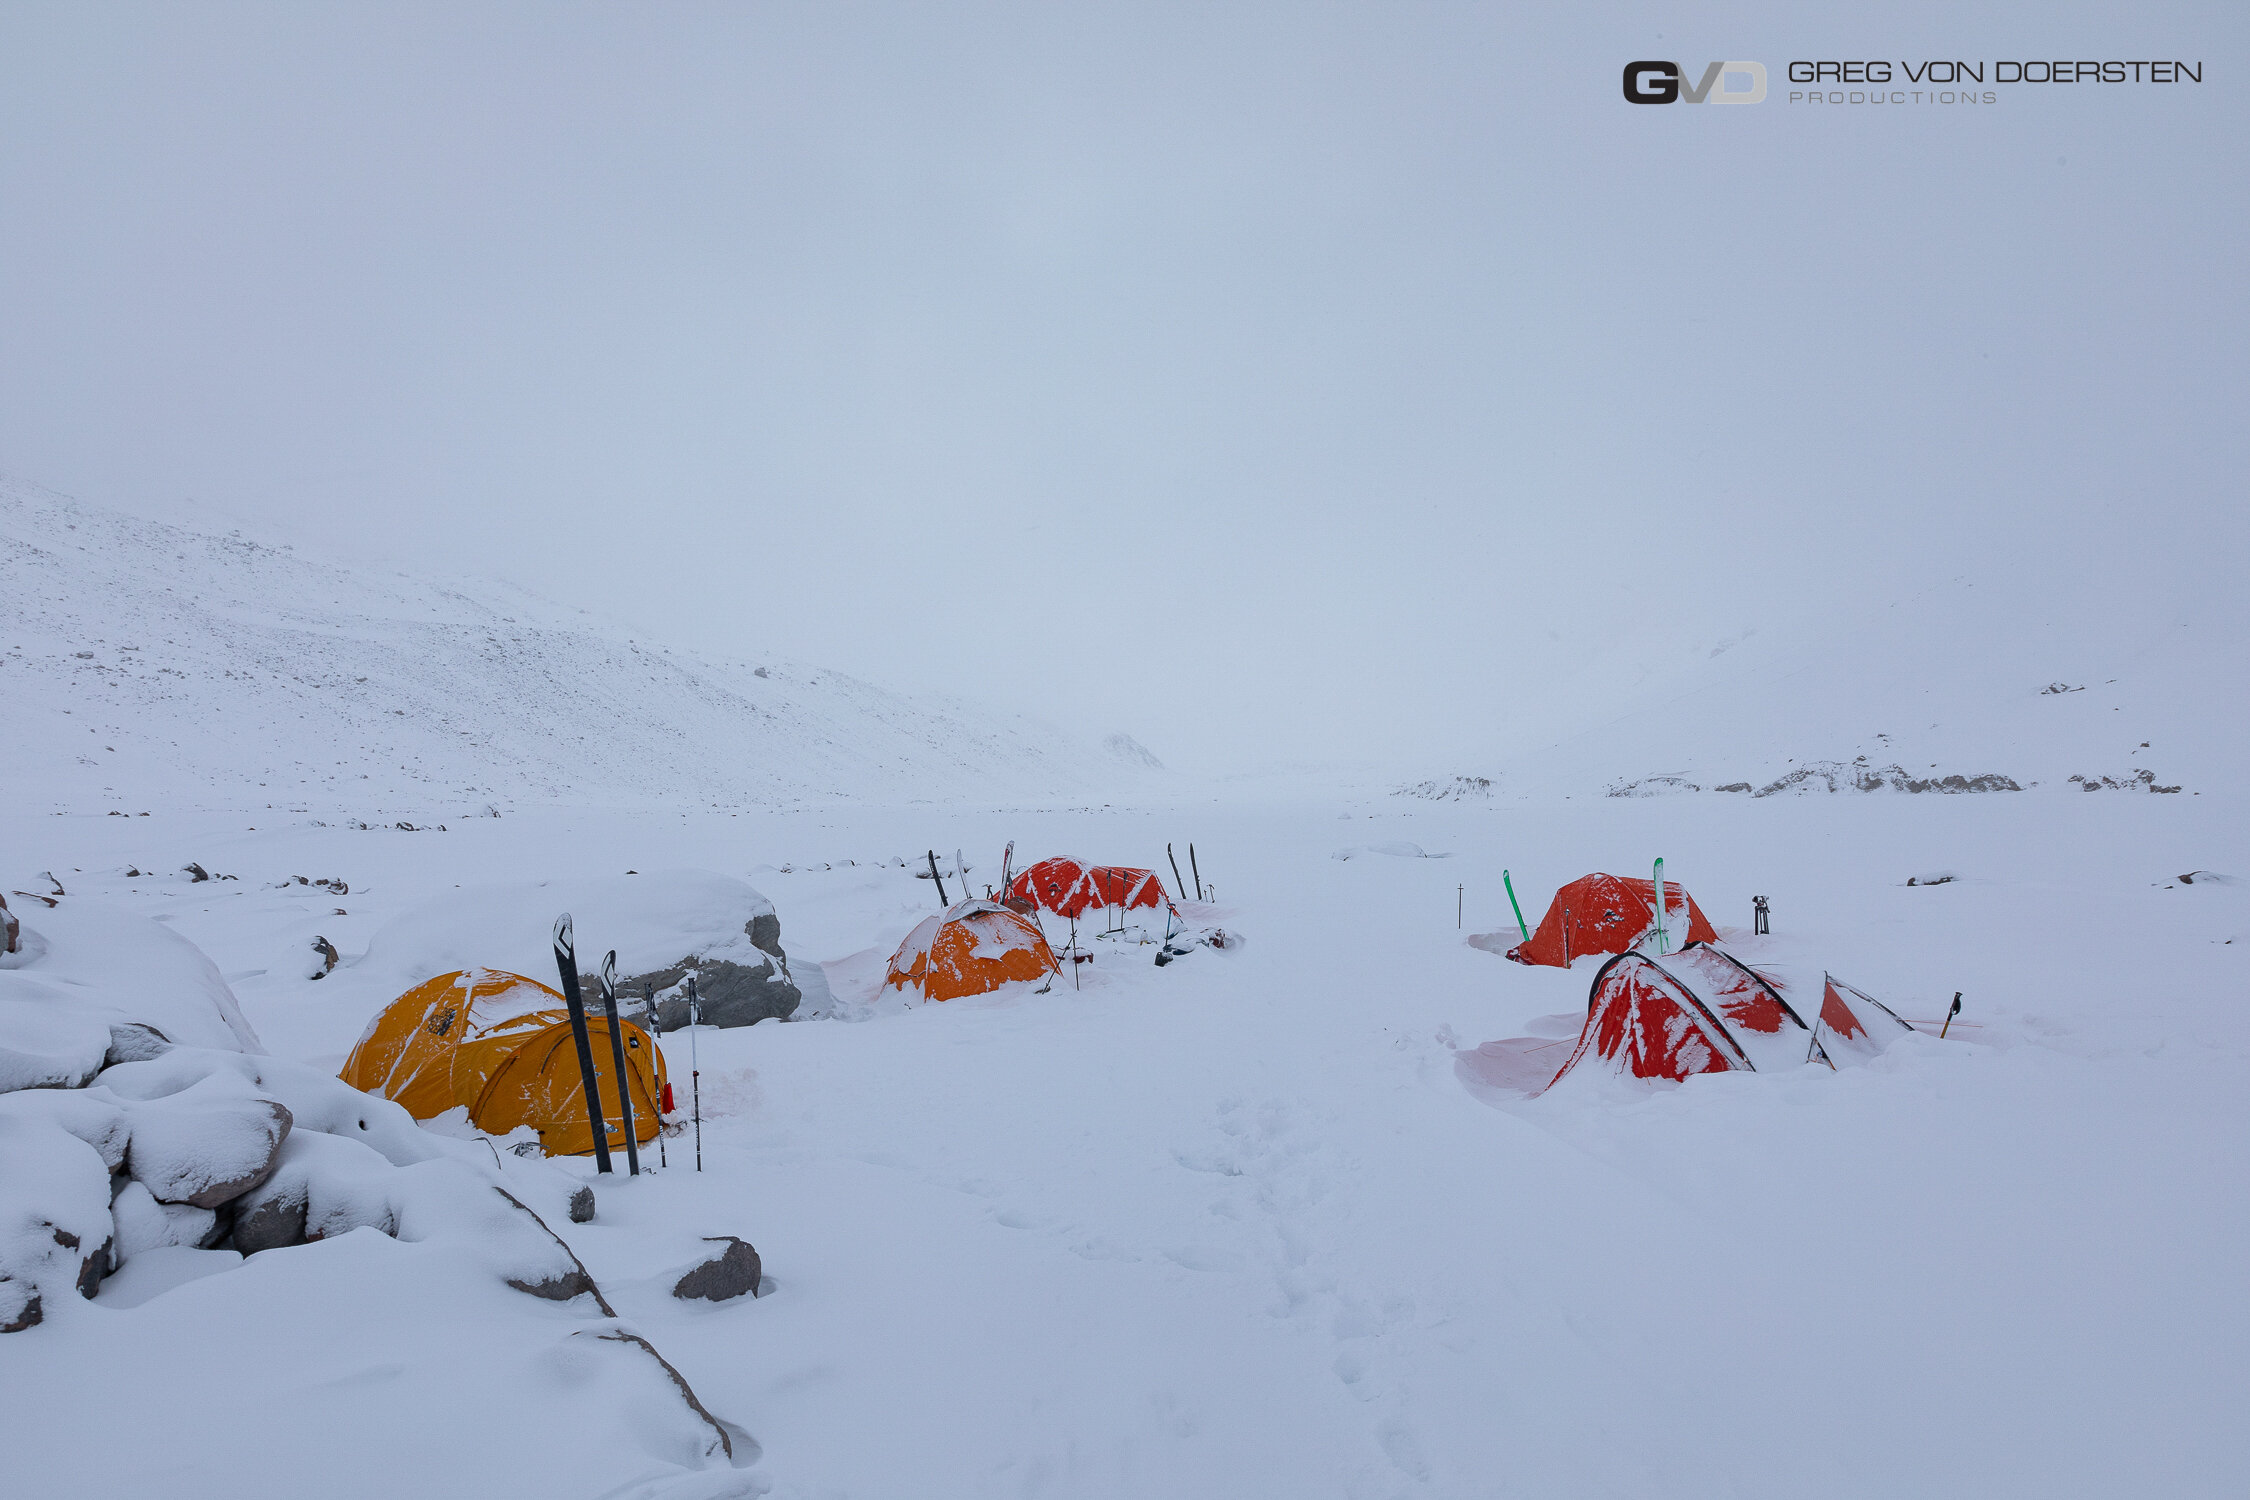 Camp 3 during a storm where the crew spent 4 days with poor visibility which made it difficult to travel.